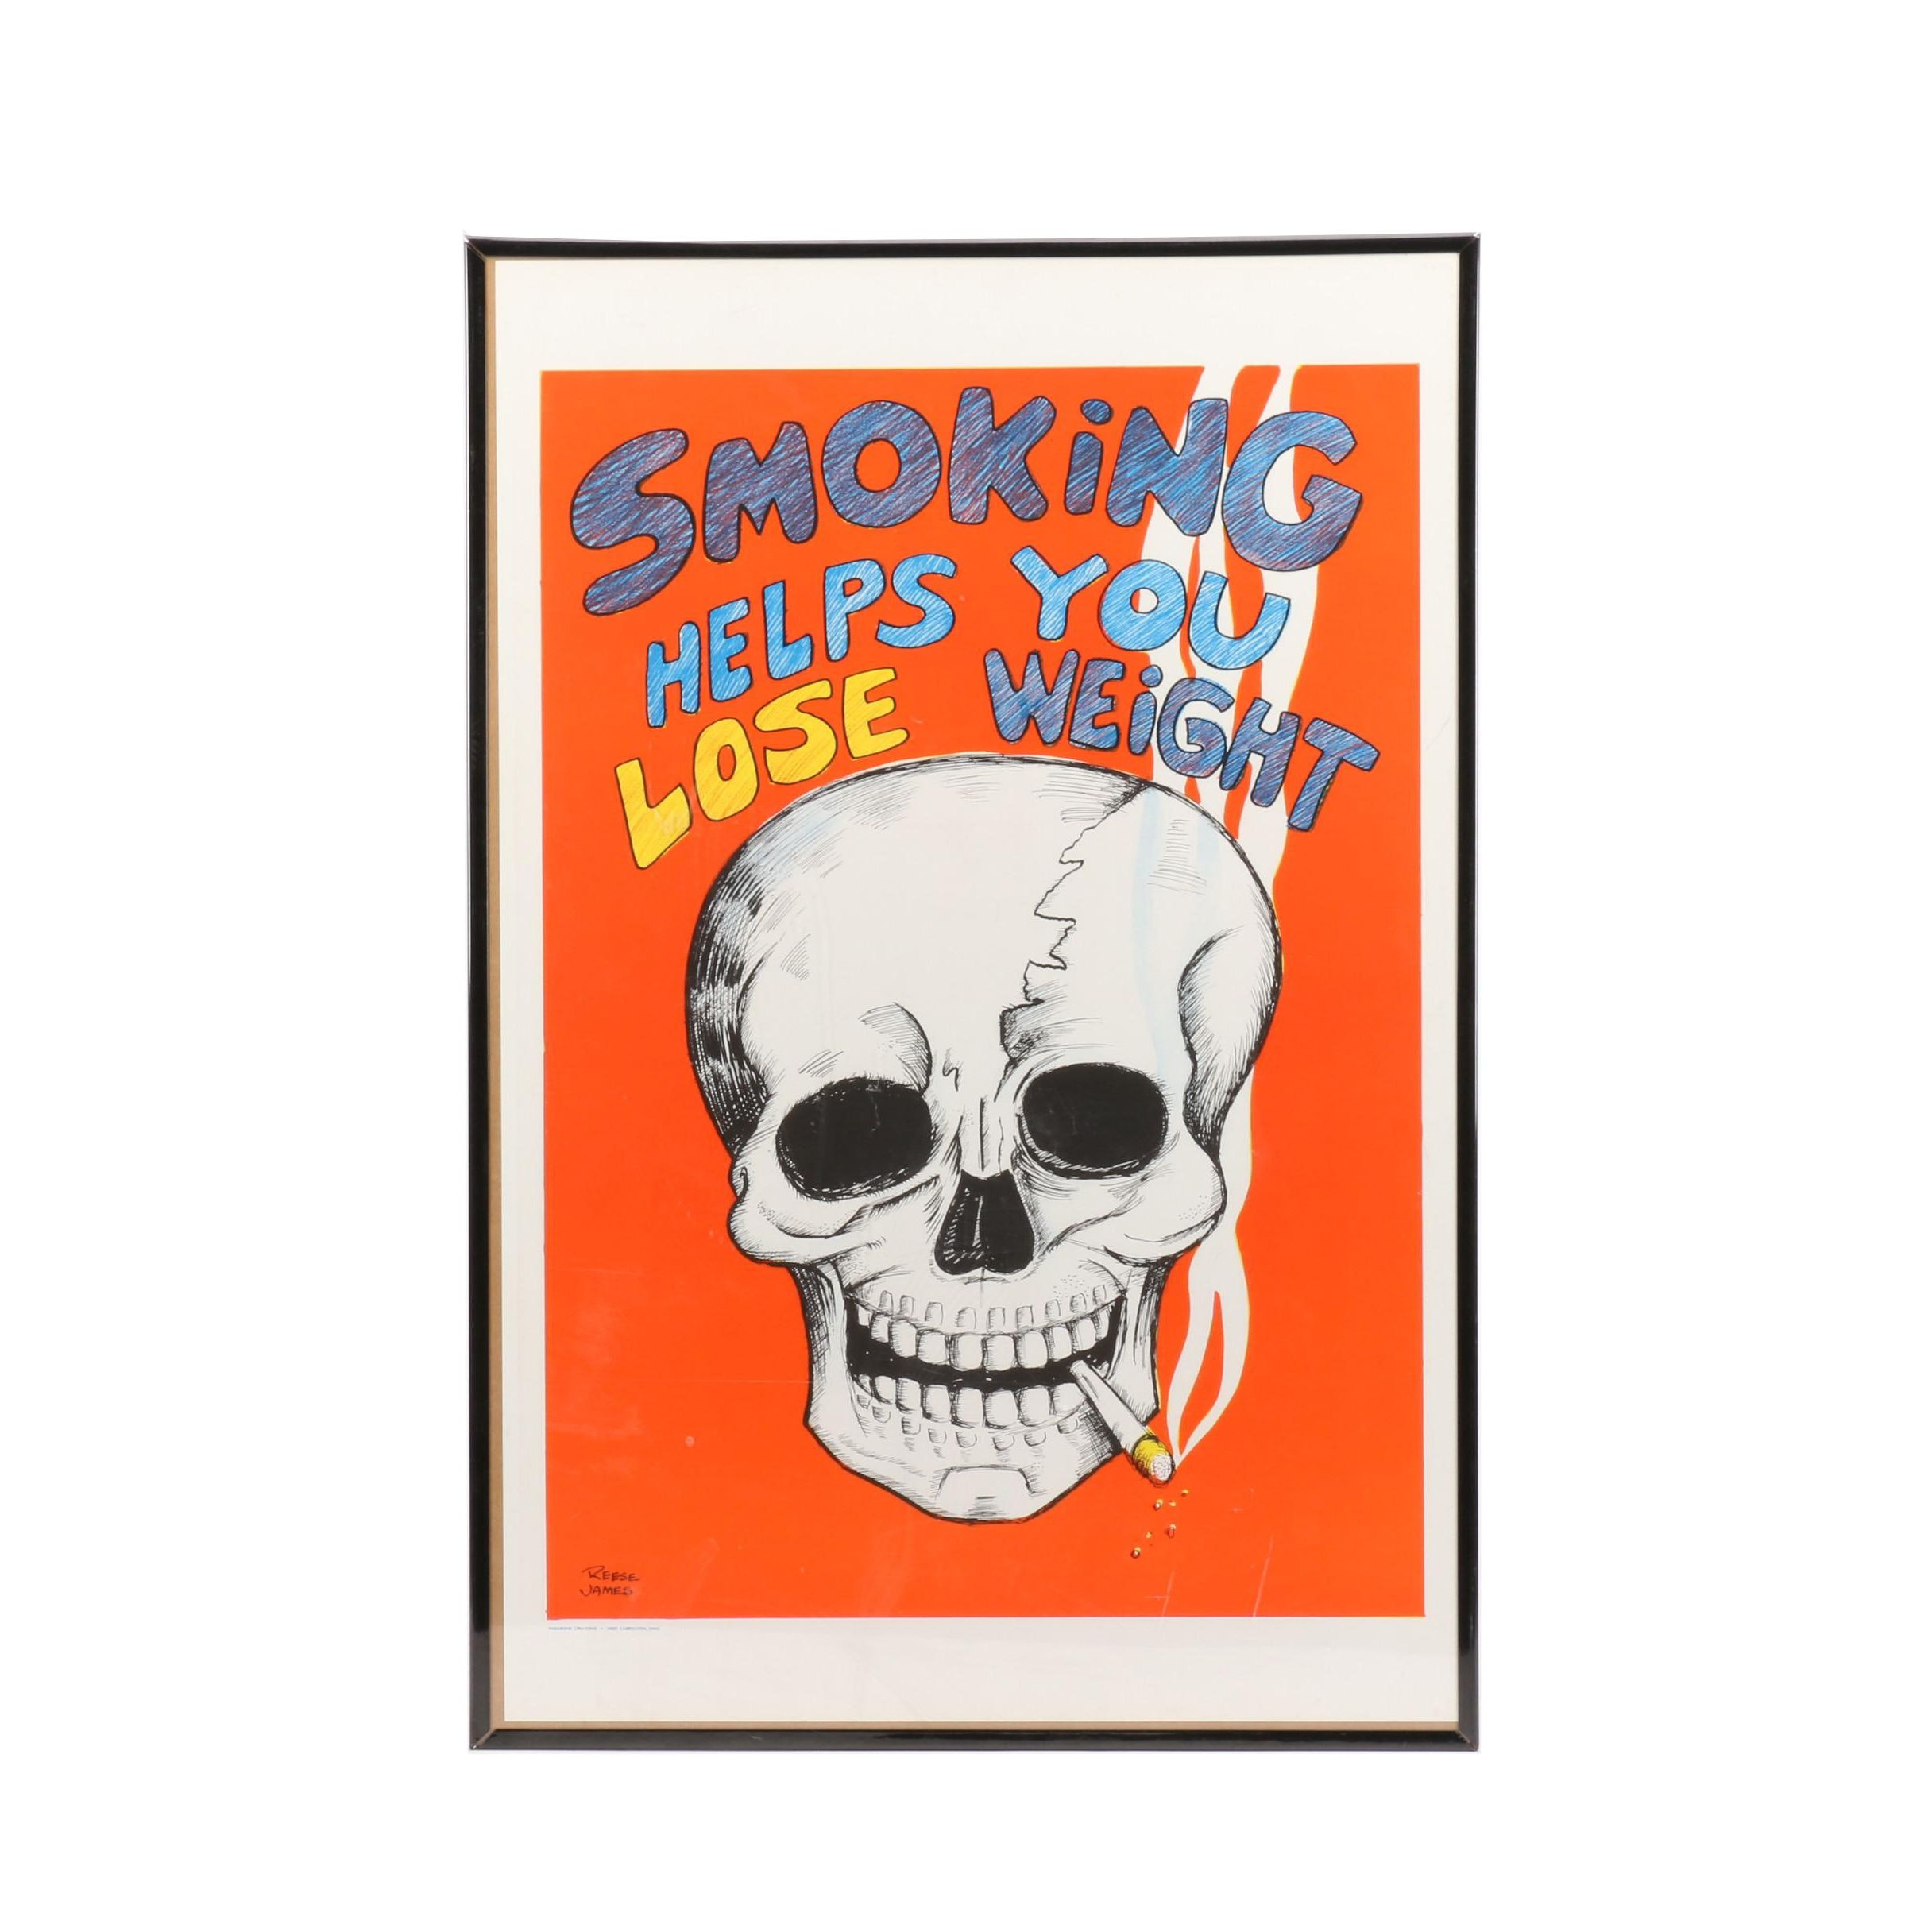 "Reese James ""Smoking Helps You Lose Weight"" Framed Poster, Vagabond Creations"